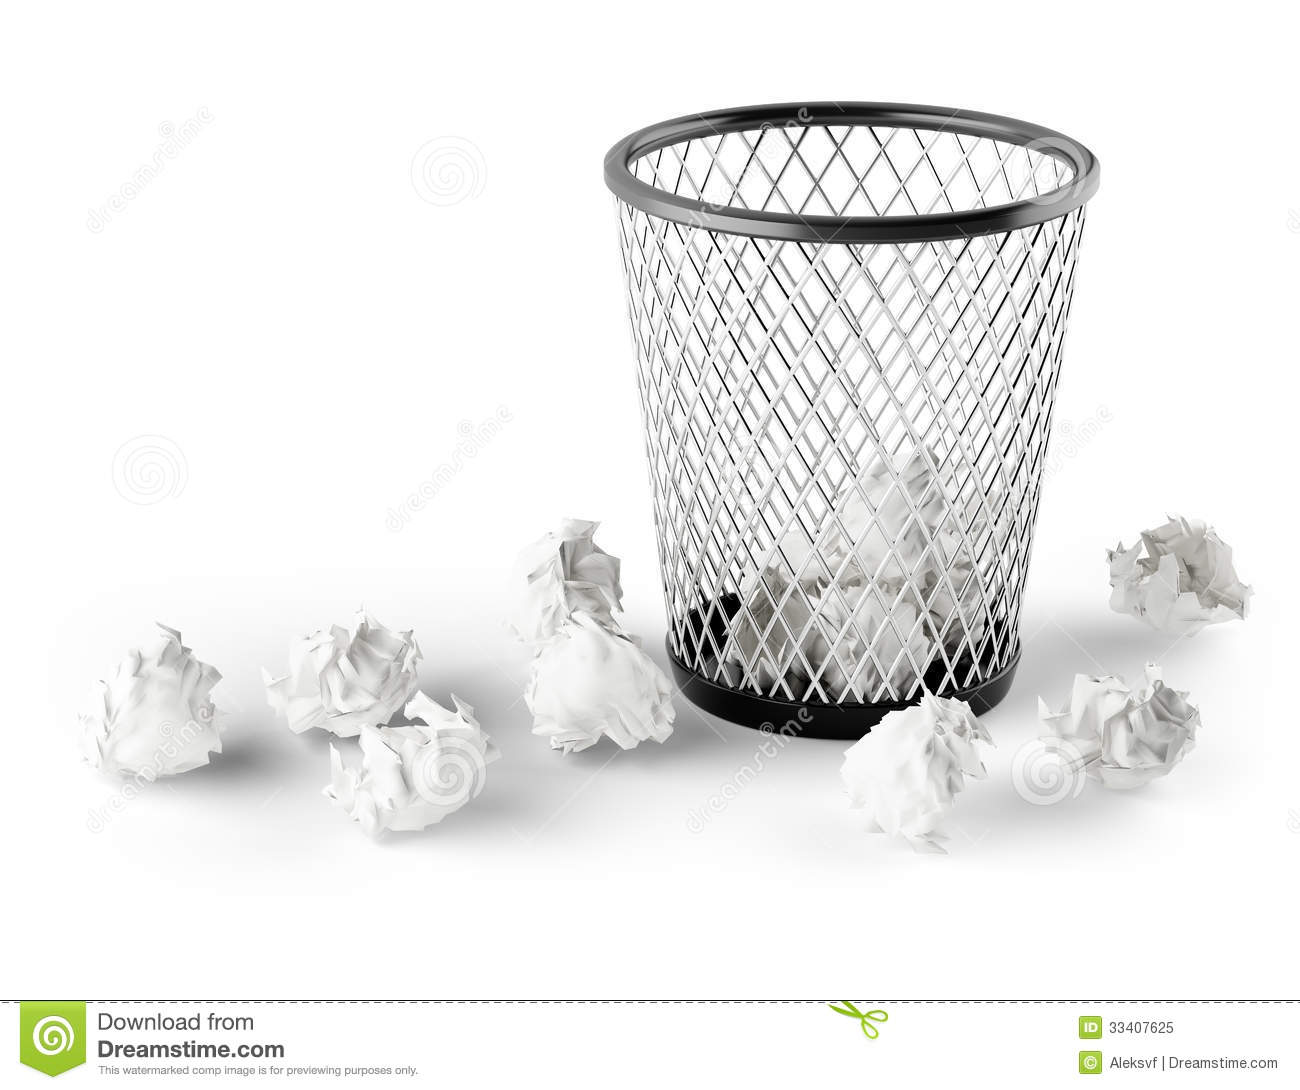 Wastepaper Basket Classy Wastepaper Basket Royalty Free Stock Photo  Image 33407625 2017